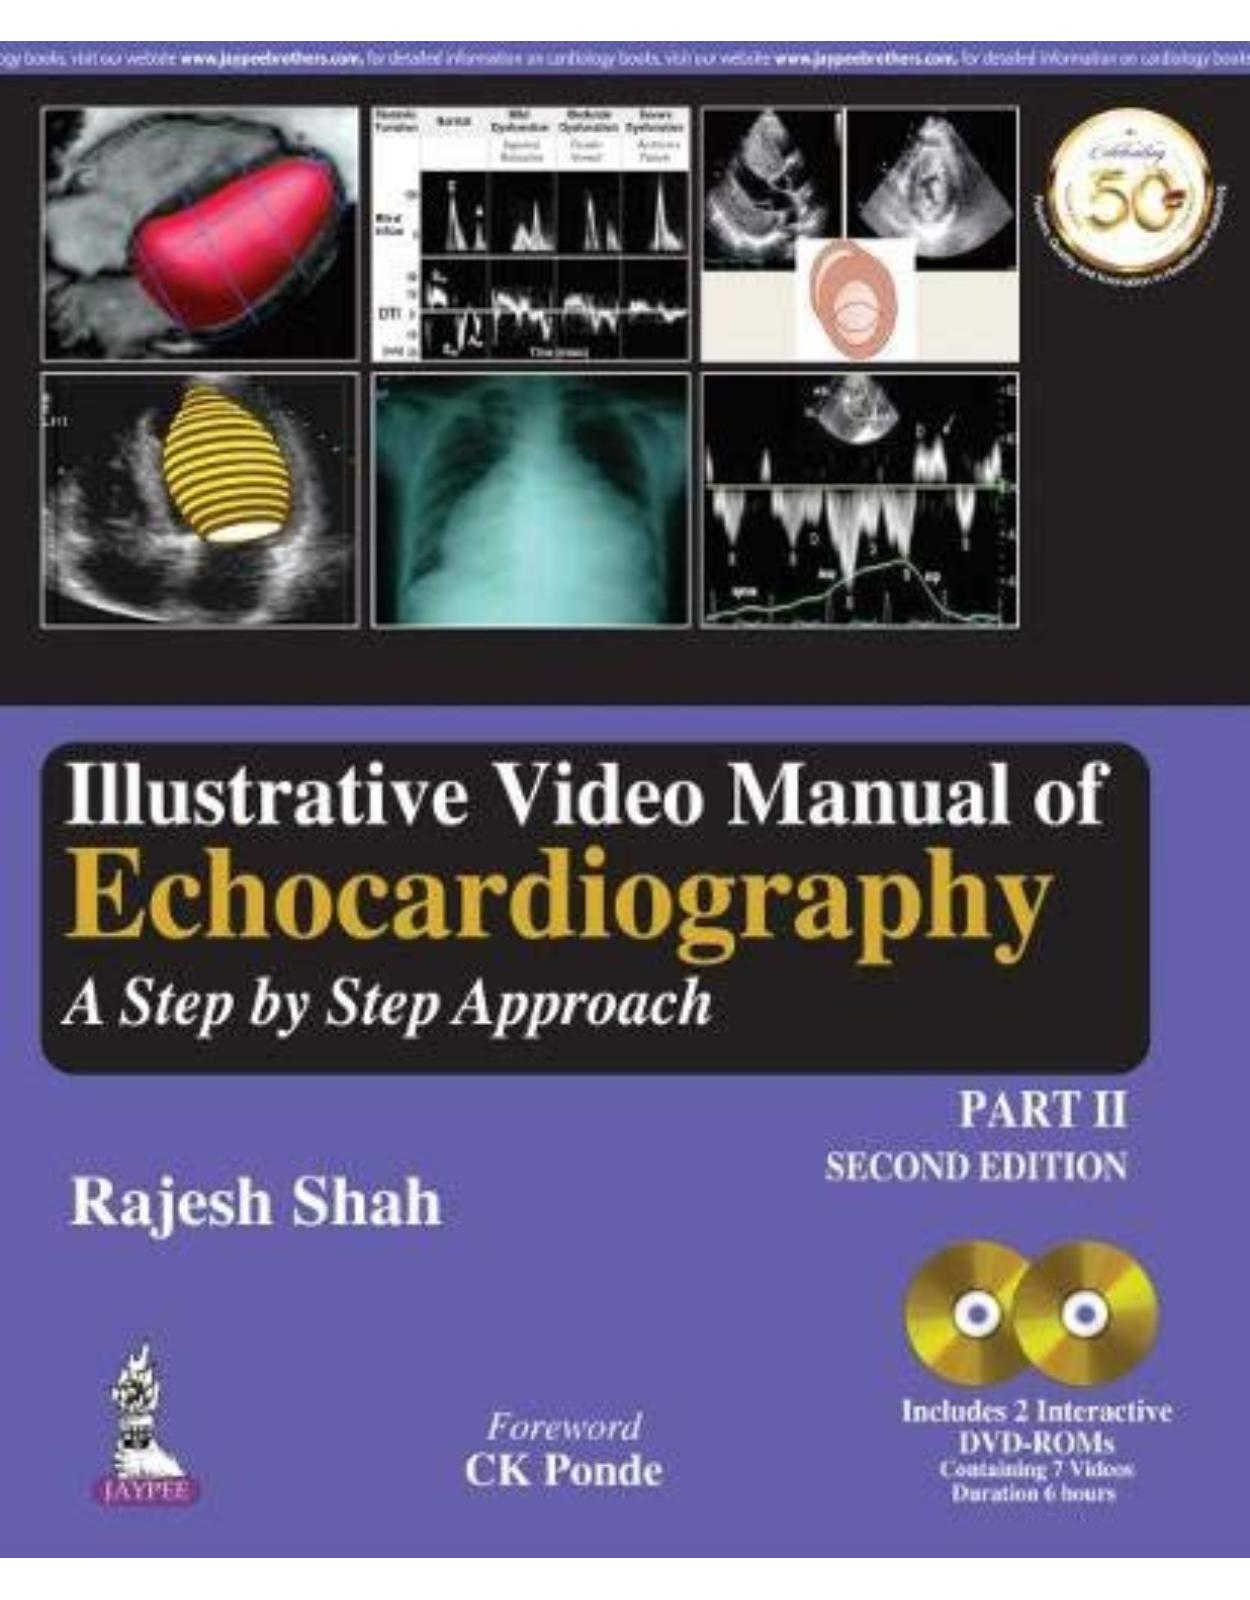 Illustrative Video Manual of Echocardiography: A Step by Step Approach - Part 2